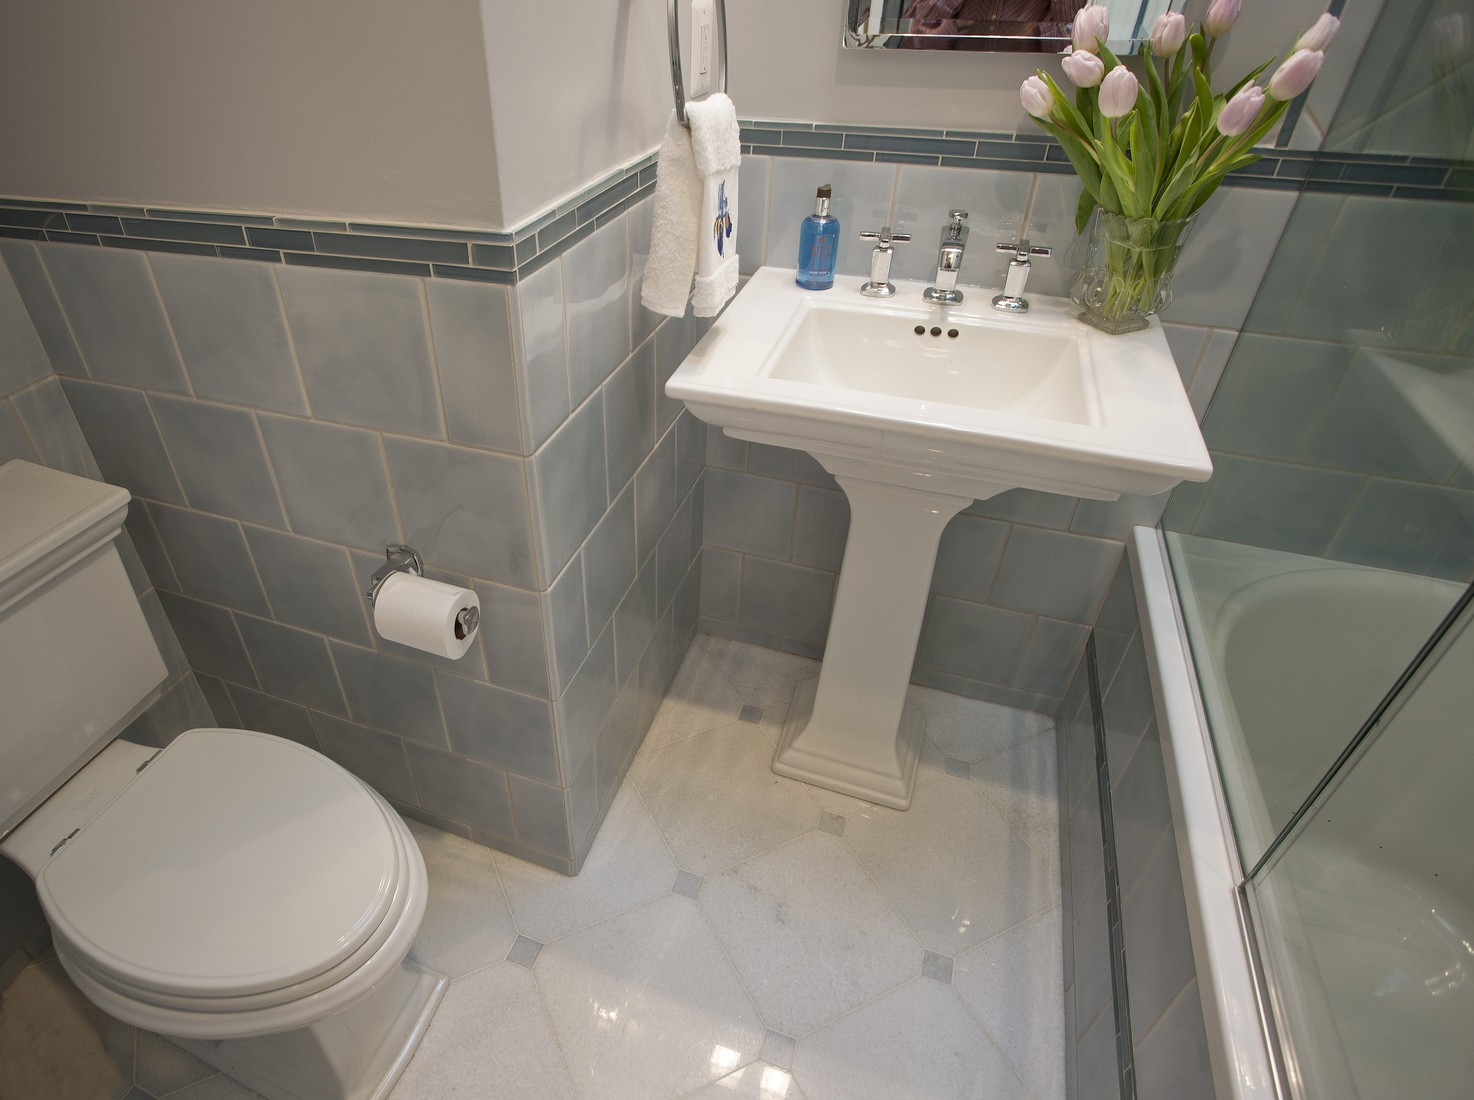 bathroom remodeling washington dc. Washington DC - Mt. Pleasant Whole House Remodel Bathroom Kitchen Remodeling Dc A